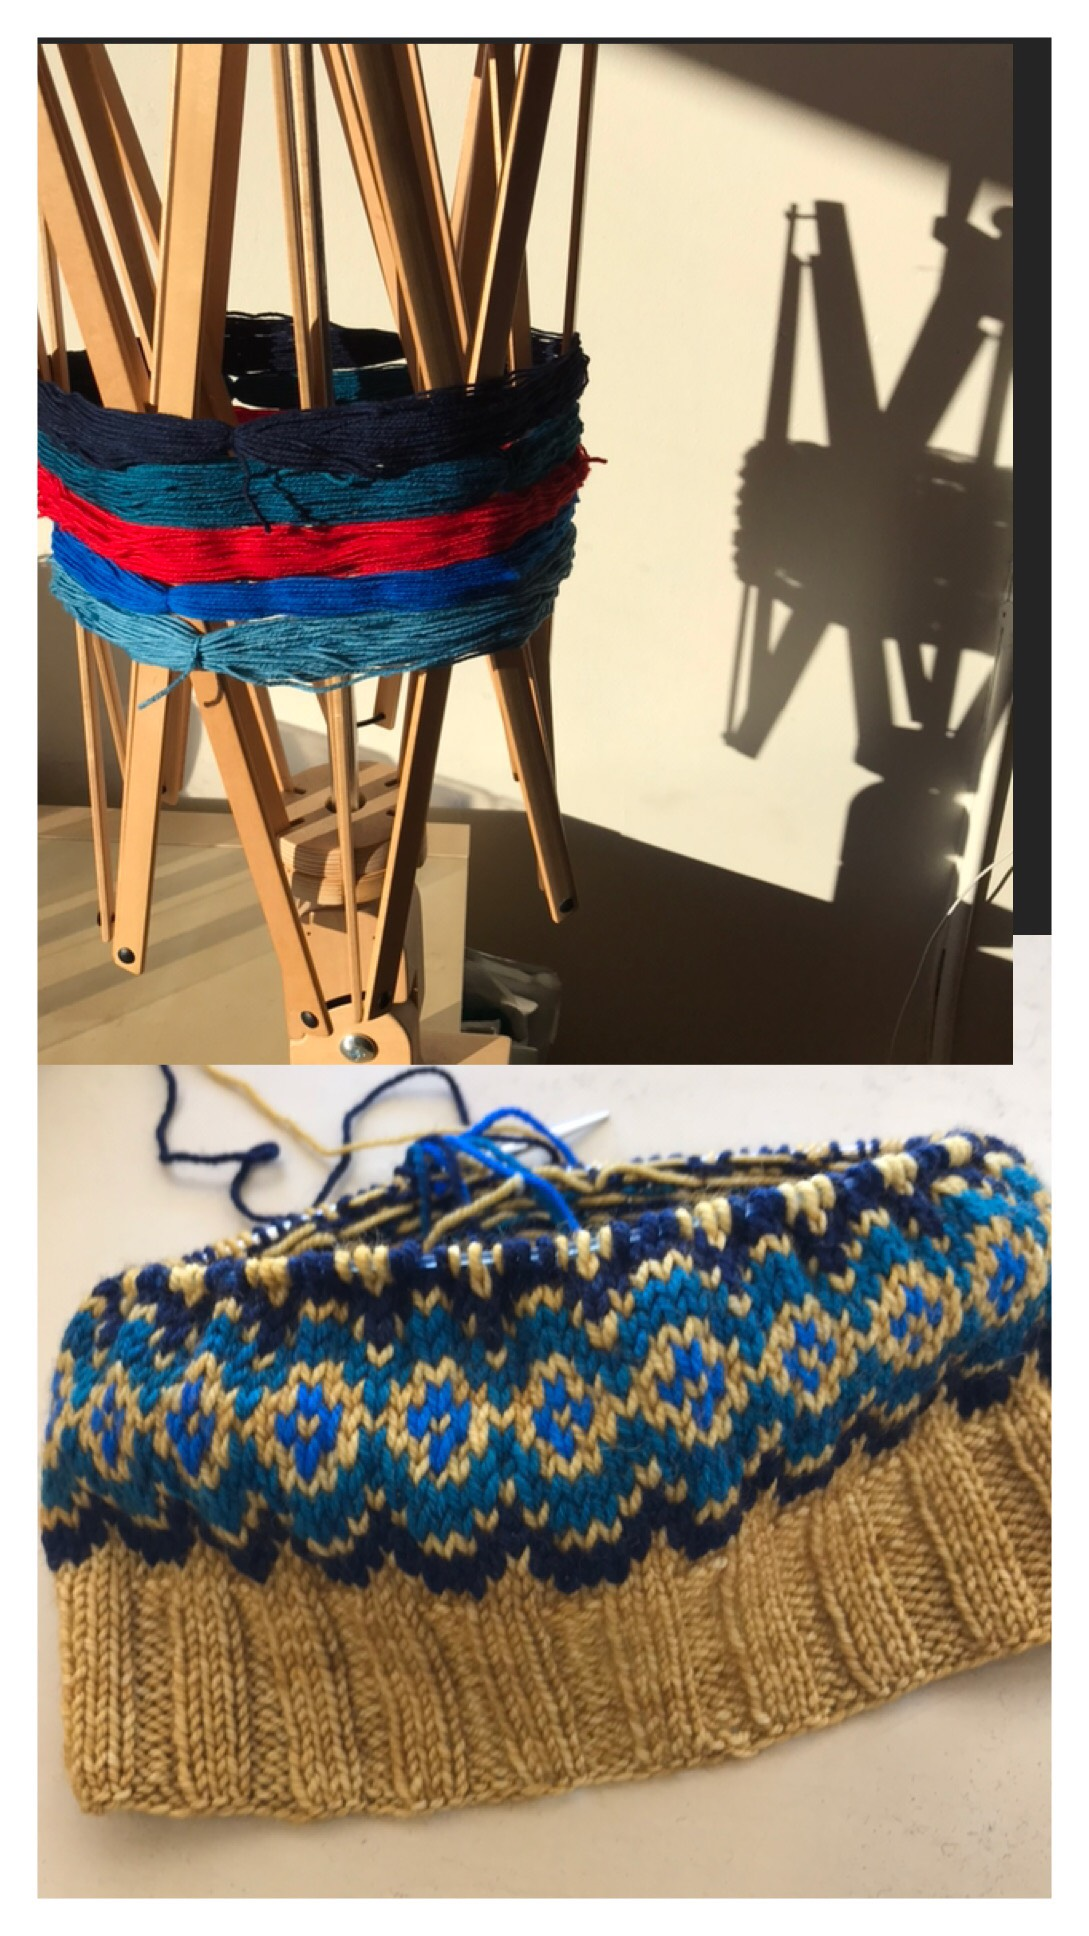 CURRENT CLASSES & EVENTS - Wonderful WallabyNovember 7, 14, 21, 28, 5:00pm-7:00pm | $40 + materials | Ann MinerThe Wonderful Wallaby is the knitted version of a classic hooded sweatshirt. It is knit in the round from the bottom up until the hood, which is knit back and forth. The stitches for the pouch pocket are picked up from the body, and knit back and forth. Sleeve shaping is done via raglan decreases. Sizing is child's size 2-12.Prerequisites: You should be comfortable casting on, knitting, purling, and casting off, and should be familiar with a method for knitting small tubes—double points, two circulars, or magic loop.Anthology KALNovember 2, 9, 16, 23, 5:00pm-7:00pm | Materials only [IN PROGRESS, but feel free to join us any time!]We'll be using the free Anthology pattern from Tin Can Knits to design unique colorwork hats or cowls. Just like the Strange Brew sweater recipe, Anthology offers a wide variety of sizes, and three gauge options. Held in the knitalong format, there will be no charge to participate beyond purchase of materials.Above: I'm thinking of doing a fingering weight hat using the Knitted Wit Smarties with a main color. It's great fun to play around with a bunch of different combinations!Prerequisites: You should be comfortable knitting, purling, casting on, and binding off. If you don't have previous experience with two-color knitting, plan for adventure—help will be available, but this knitalong is not a formal class.